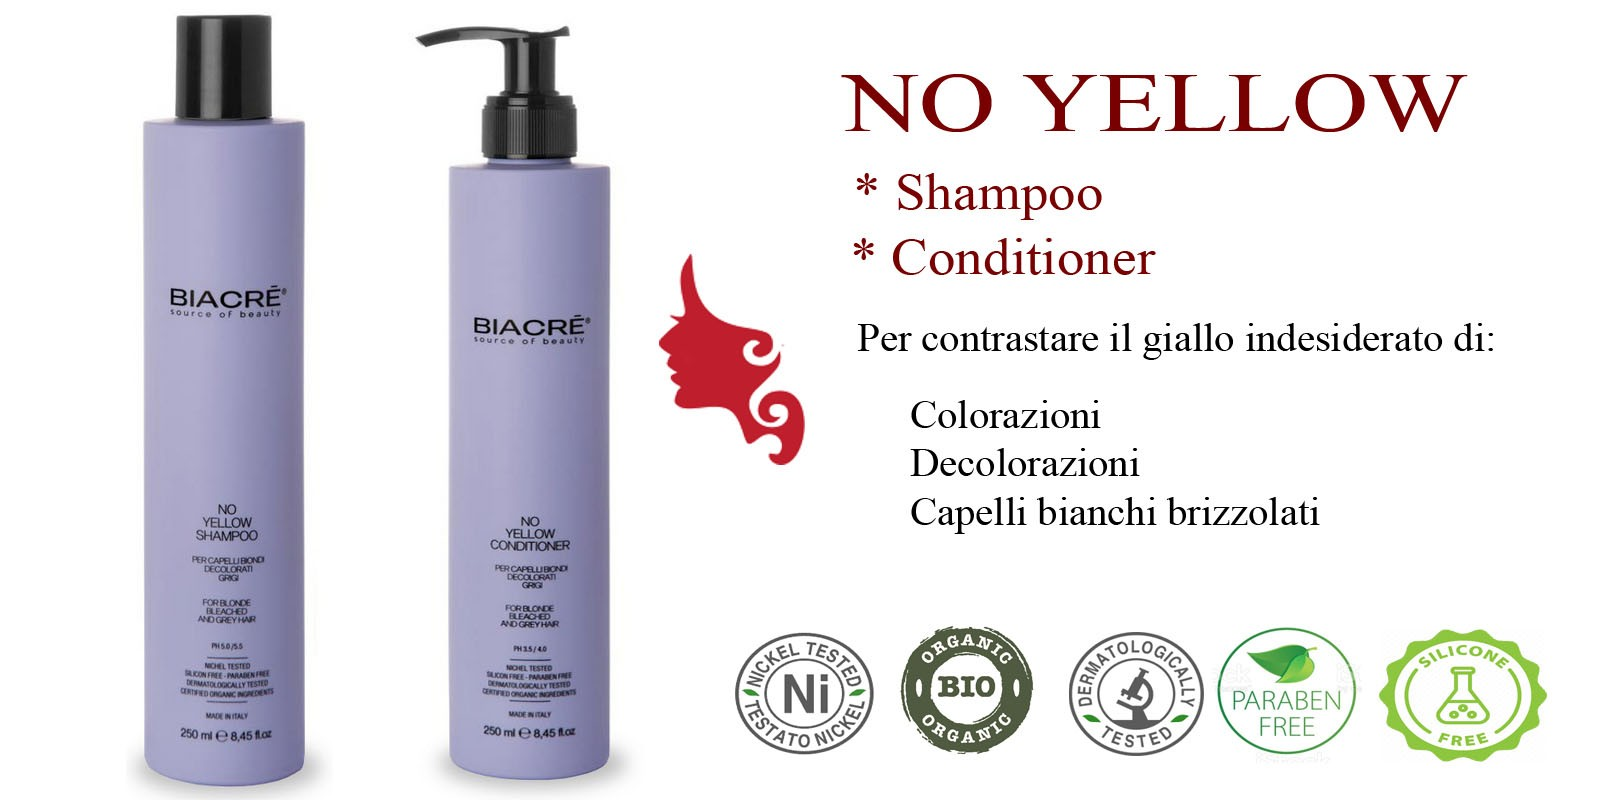 NO YELLOW Shampoo - Conditioner Nikel Tested